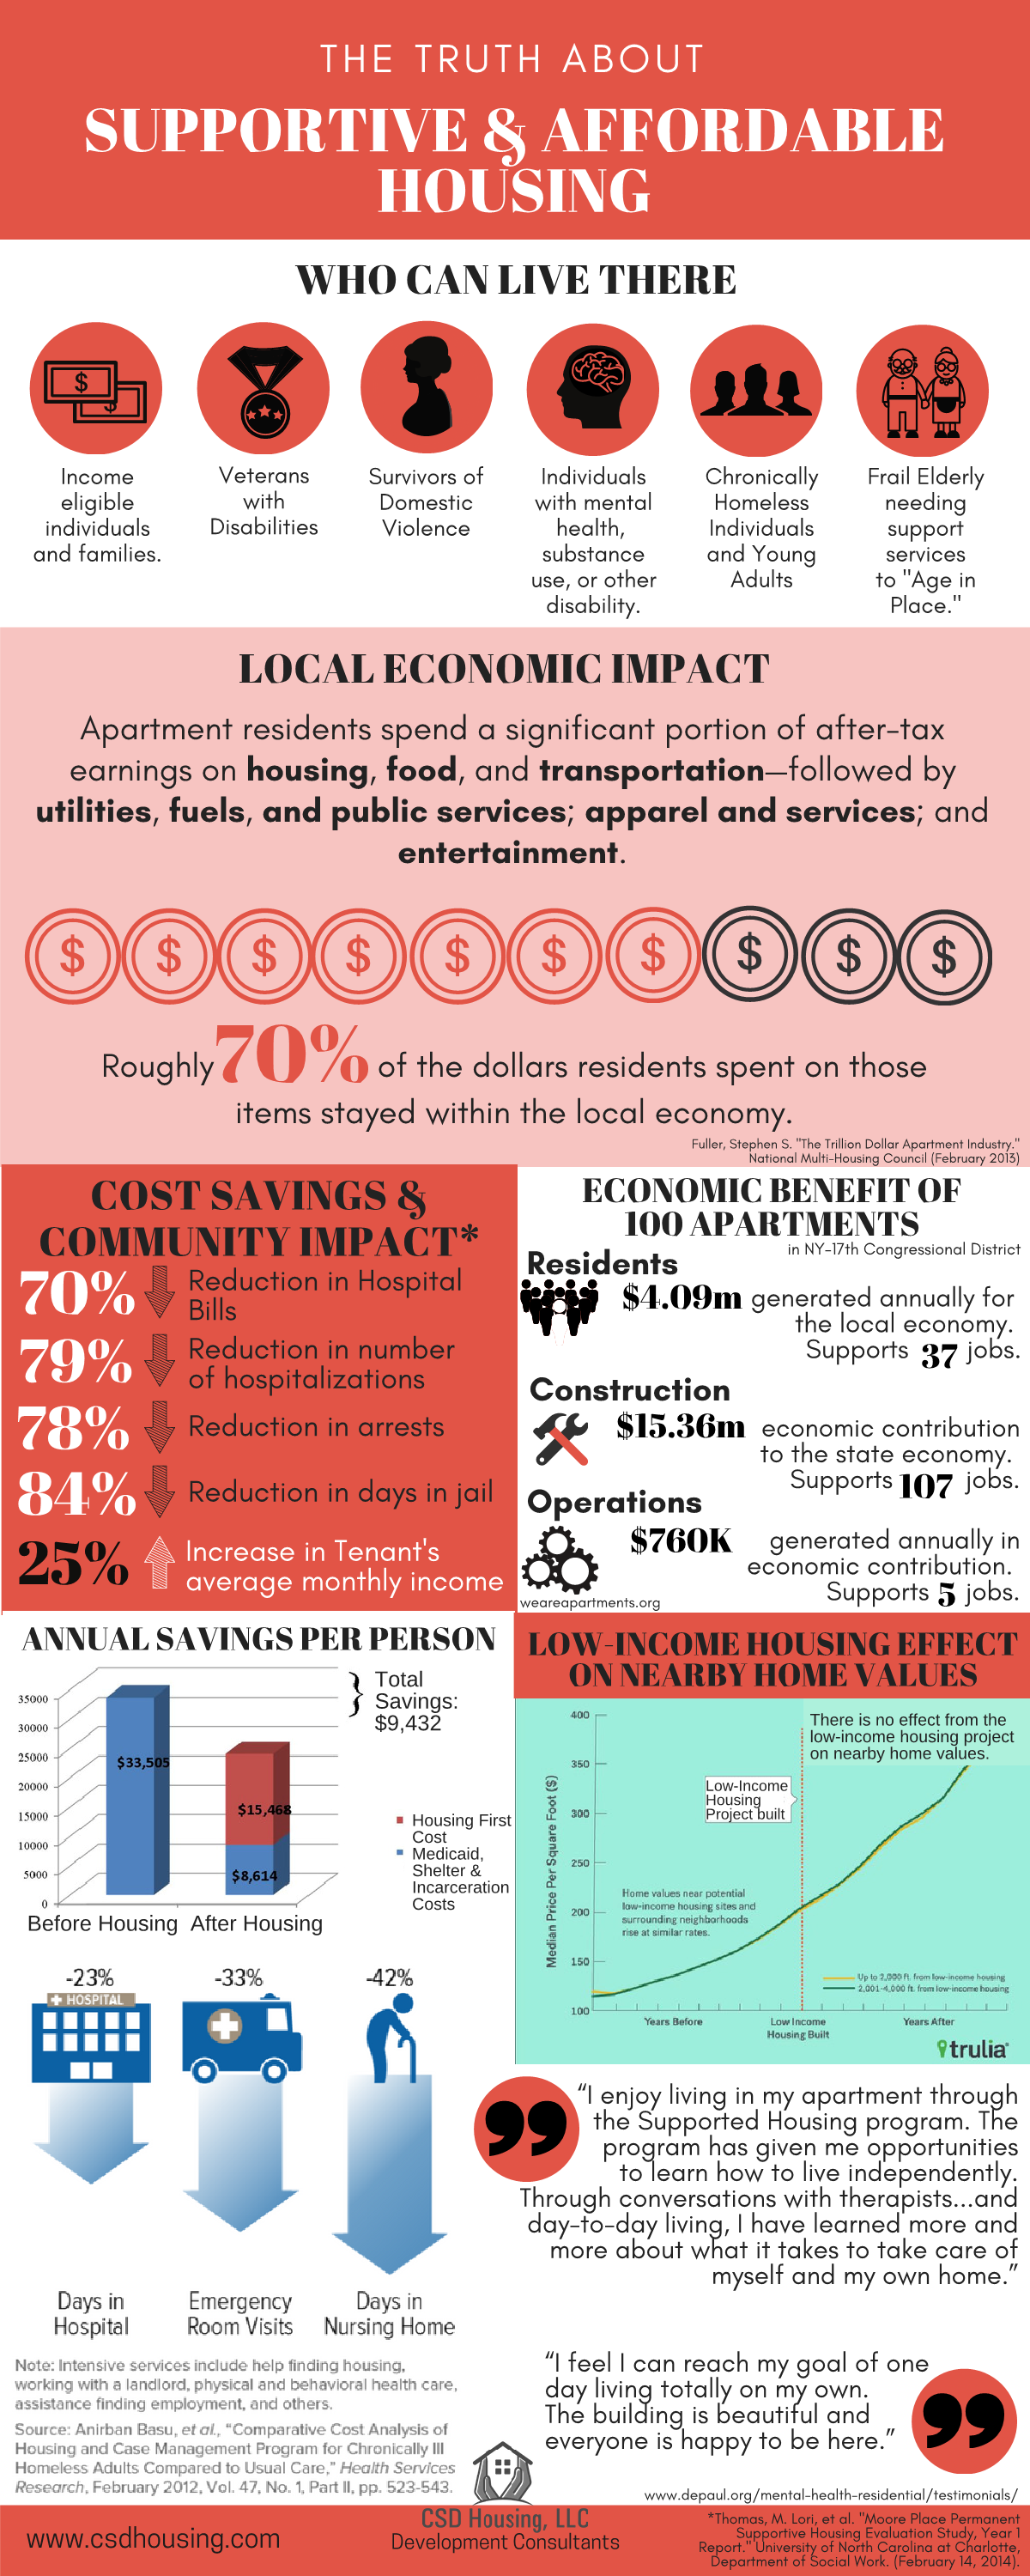 SUPPORTIVE HOUSING Infographic1